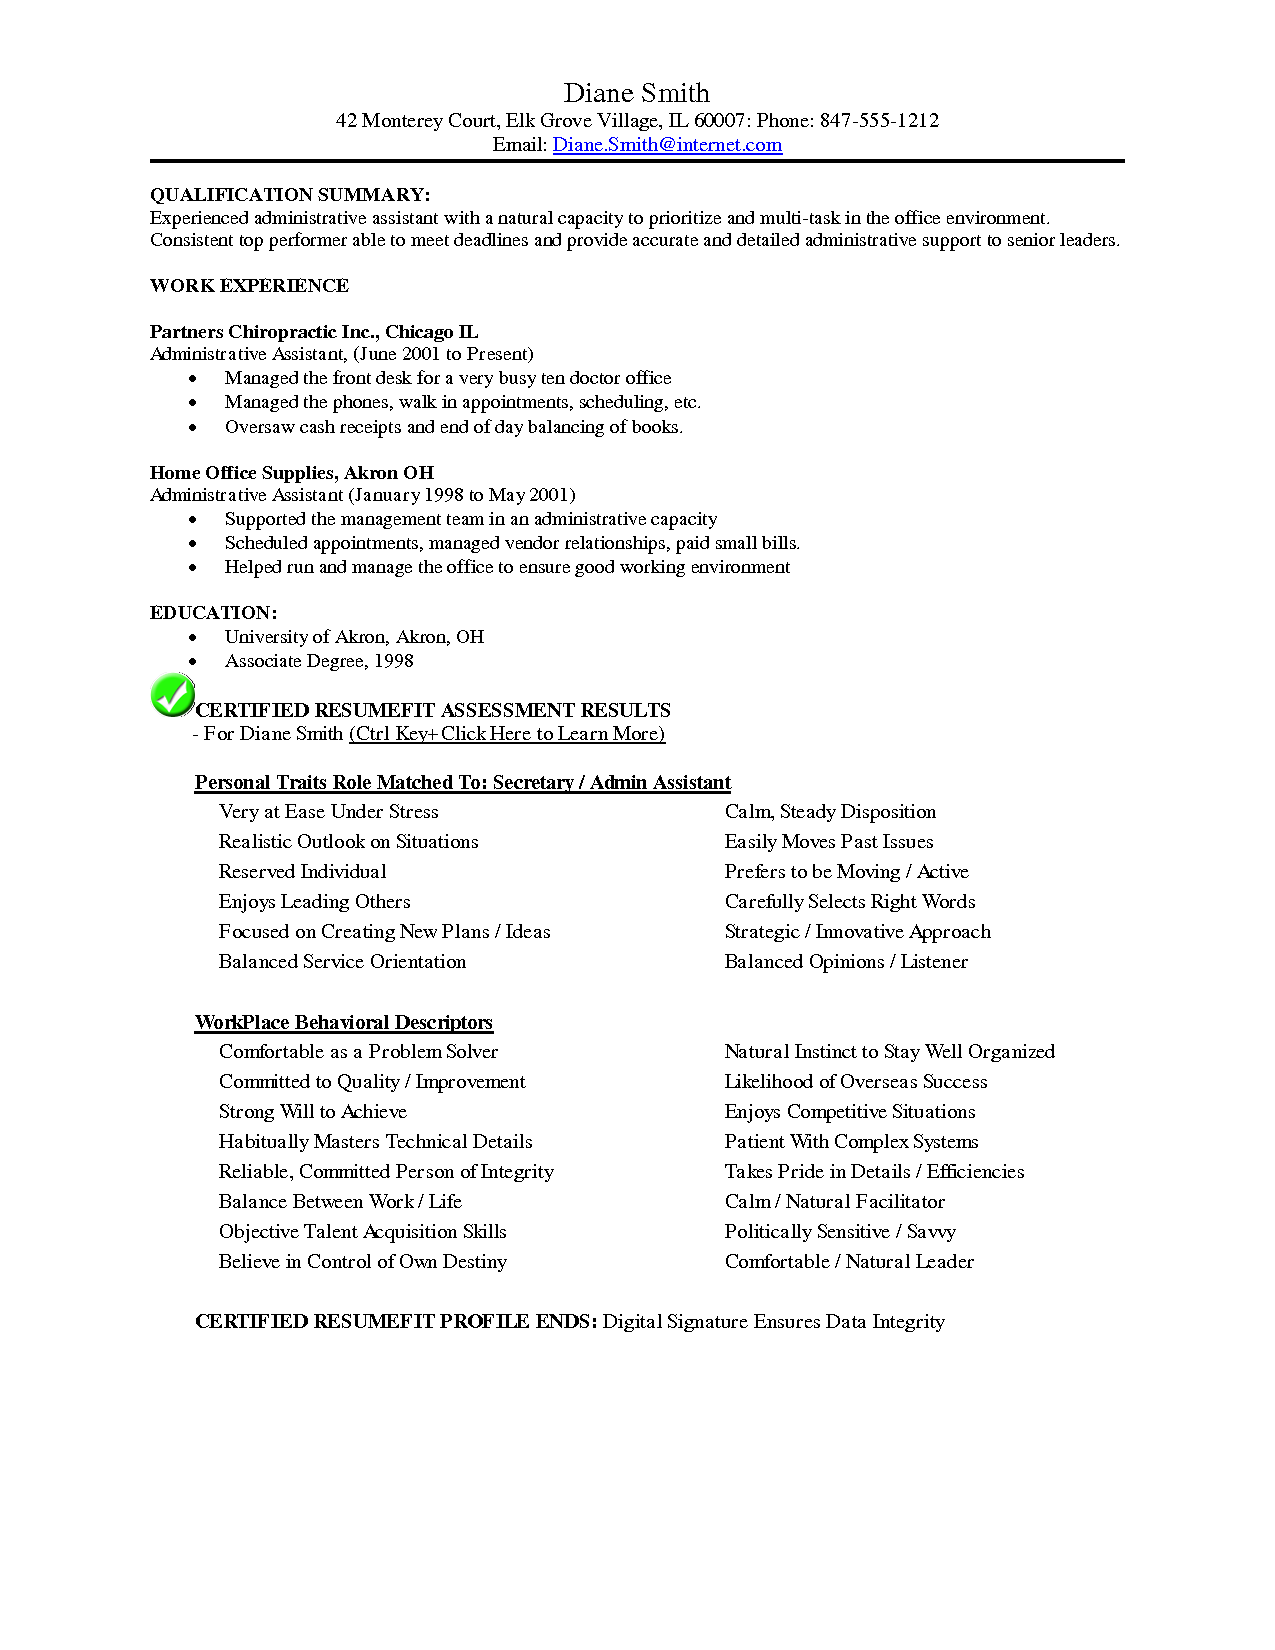 Resume Examples Medical Assistant Chiropractic Resume Example  Resumes  Pinterest  Resume